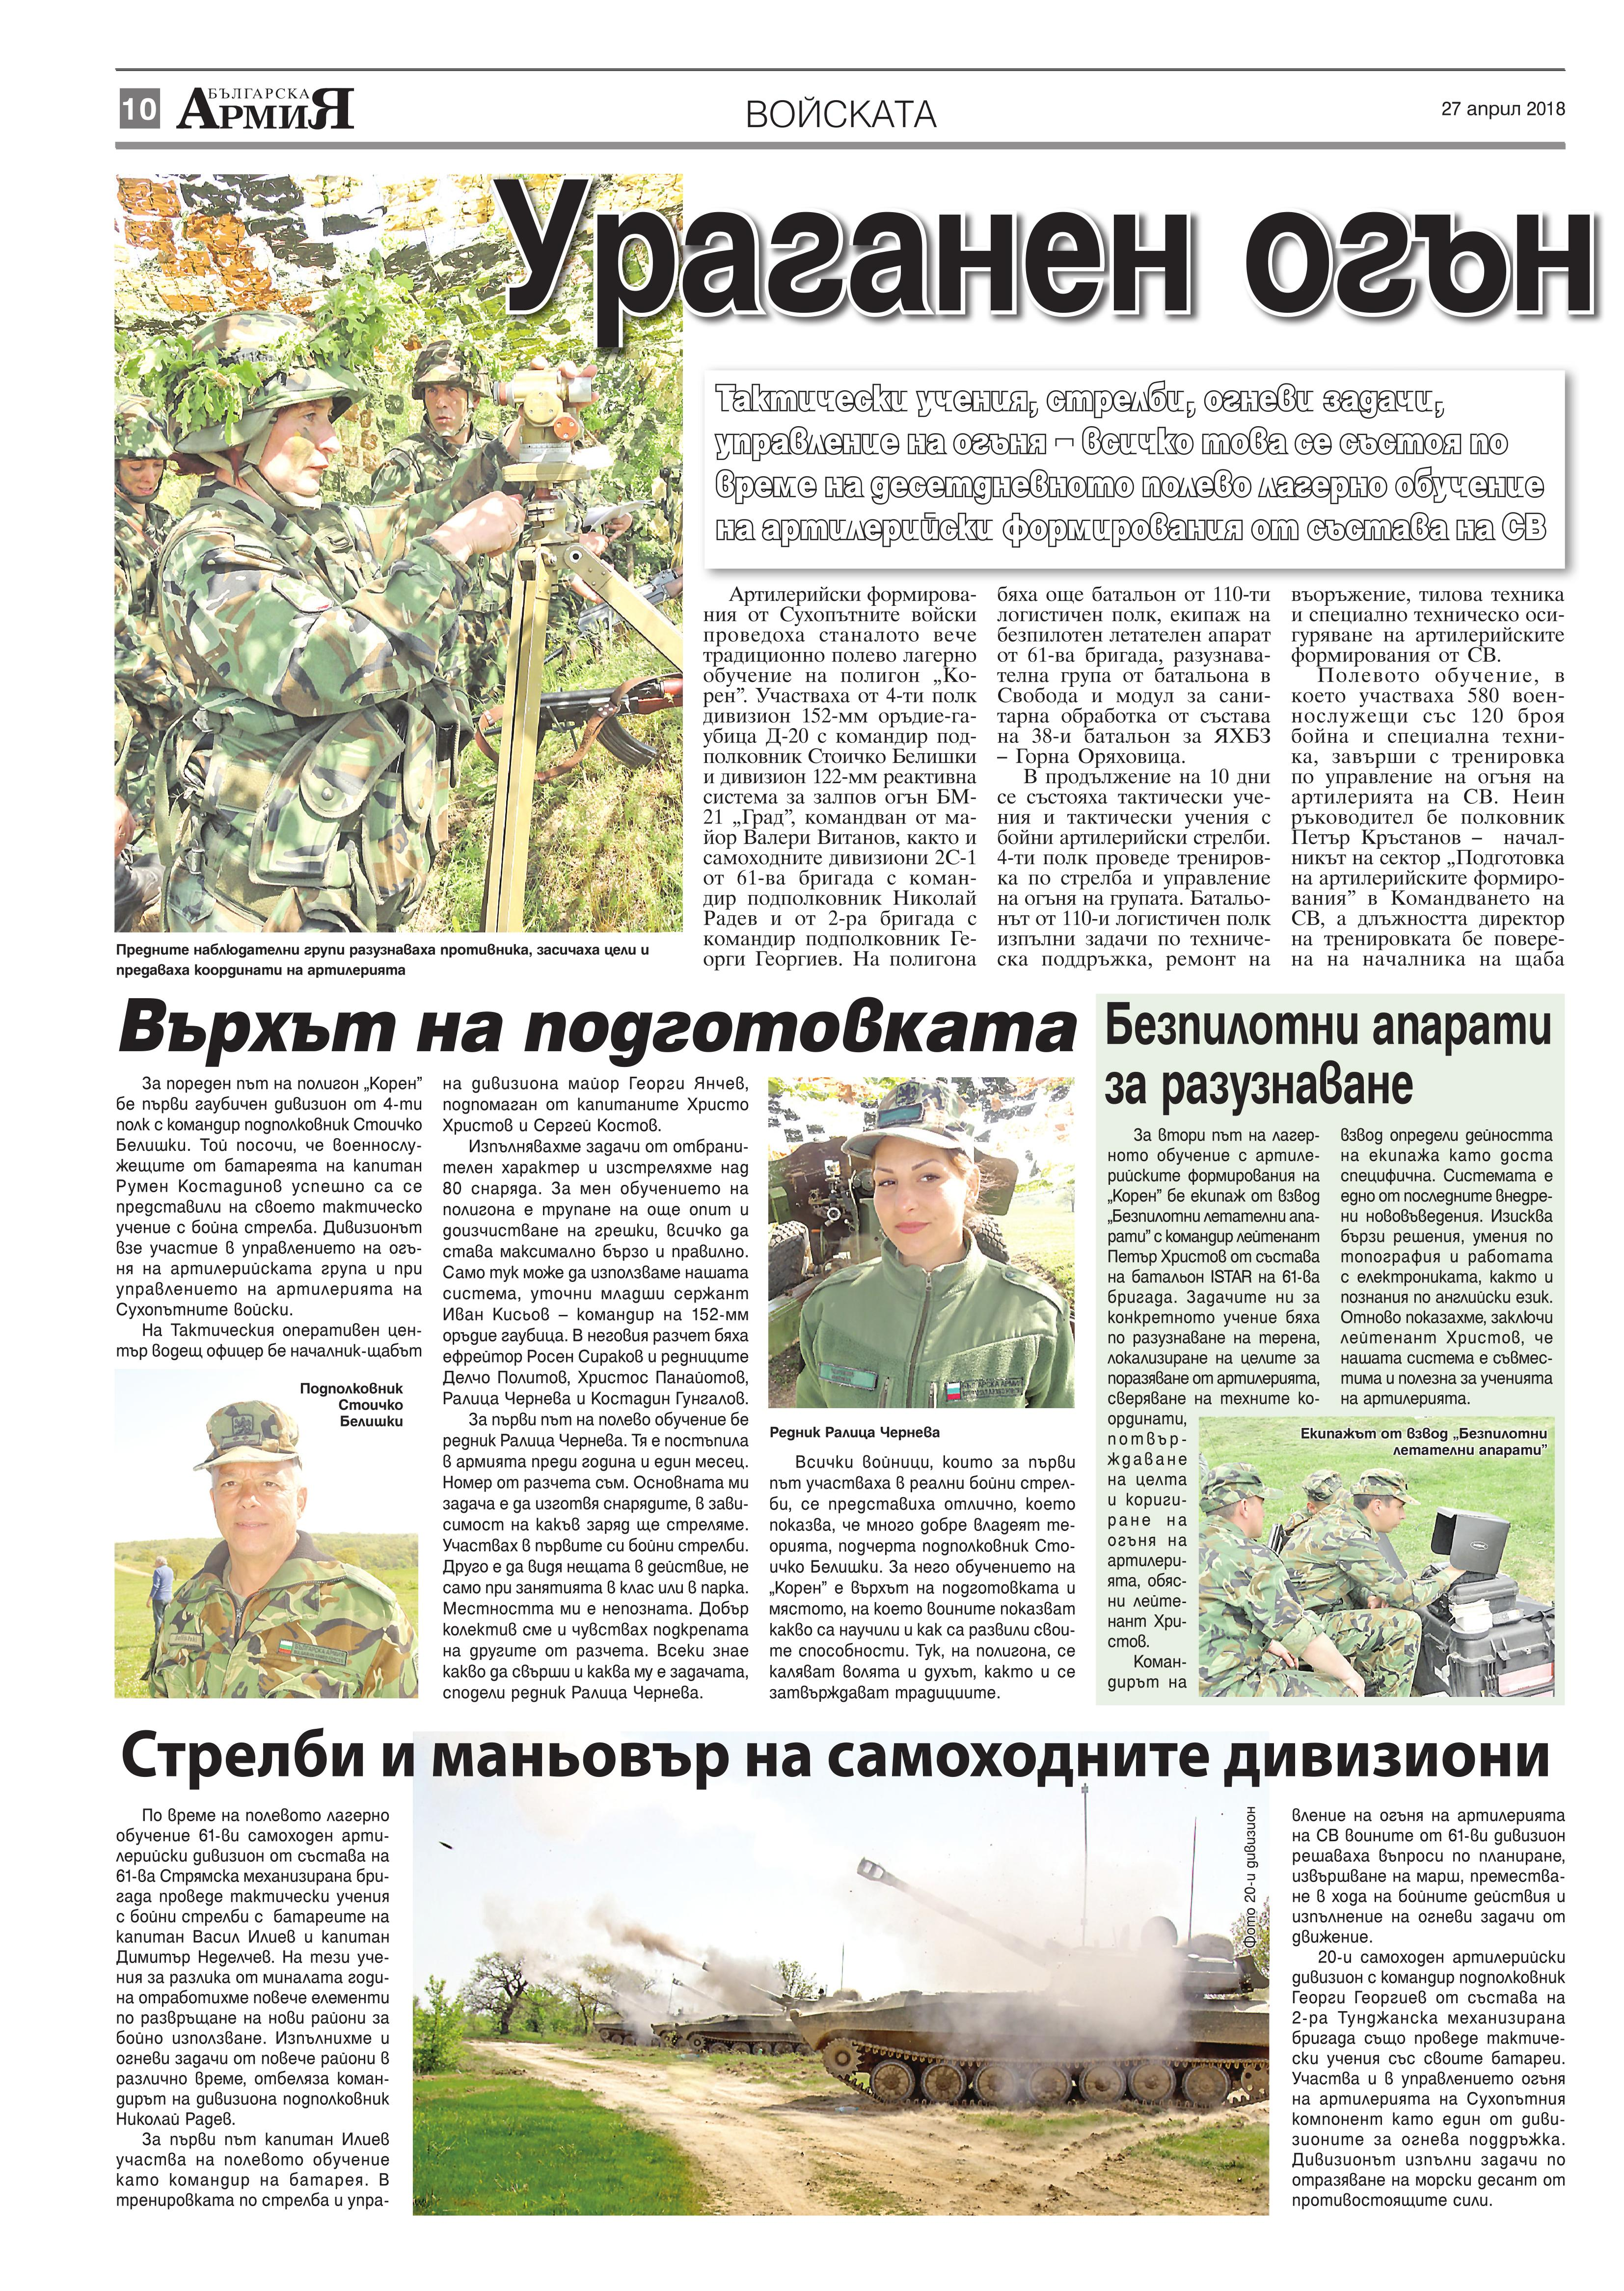 http://armymedia.bg/wp-content/uploads/2015/06/10.page1_-49.jpg